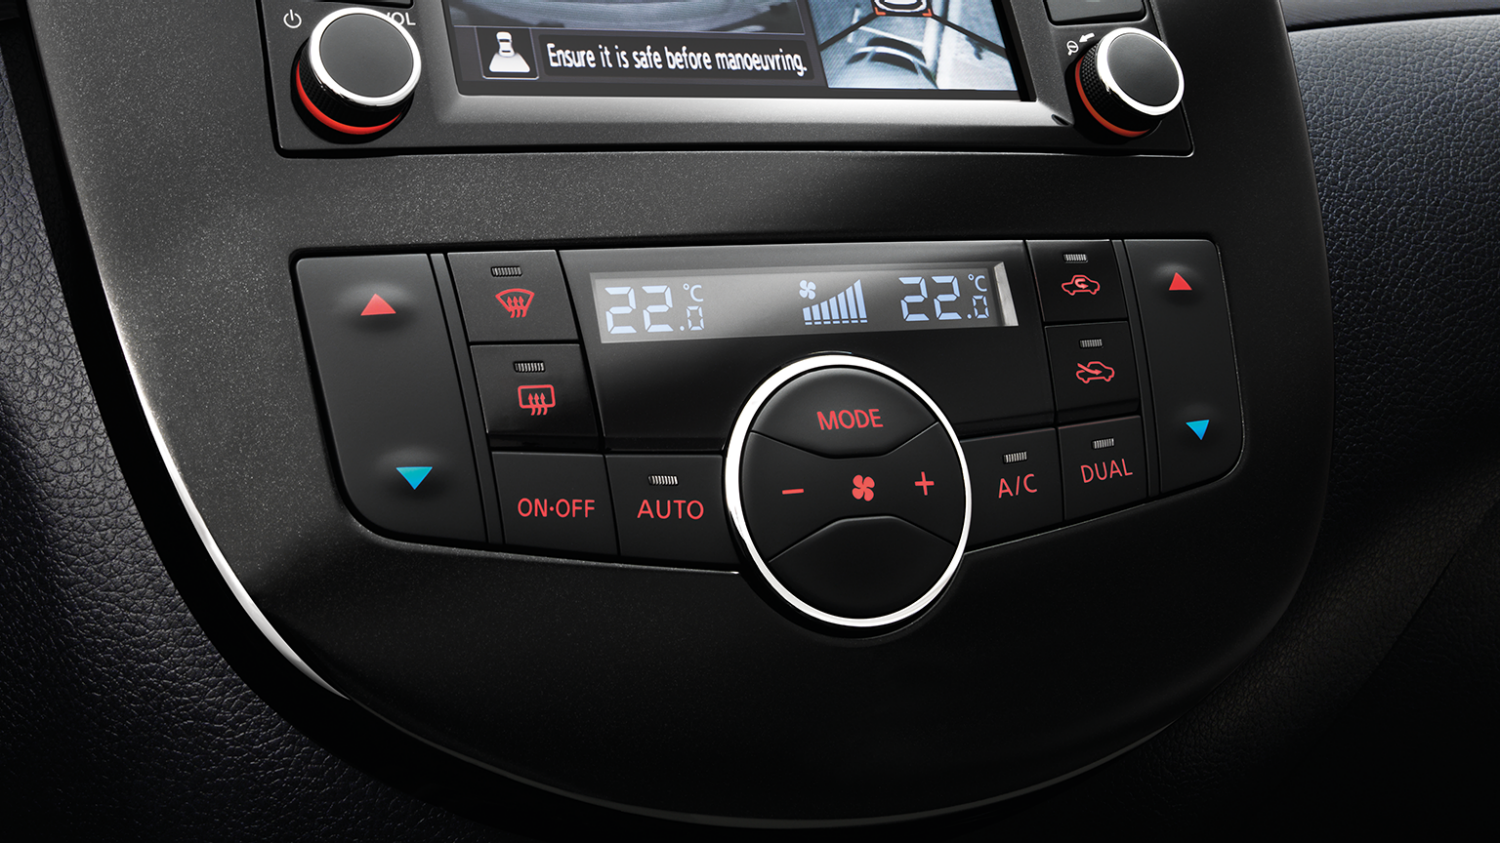 Nissan PULSAR berlina - Display con climatizzatore bizona